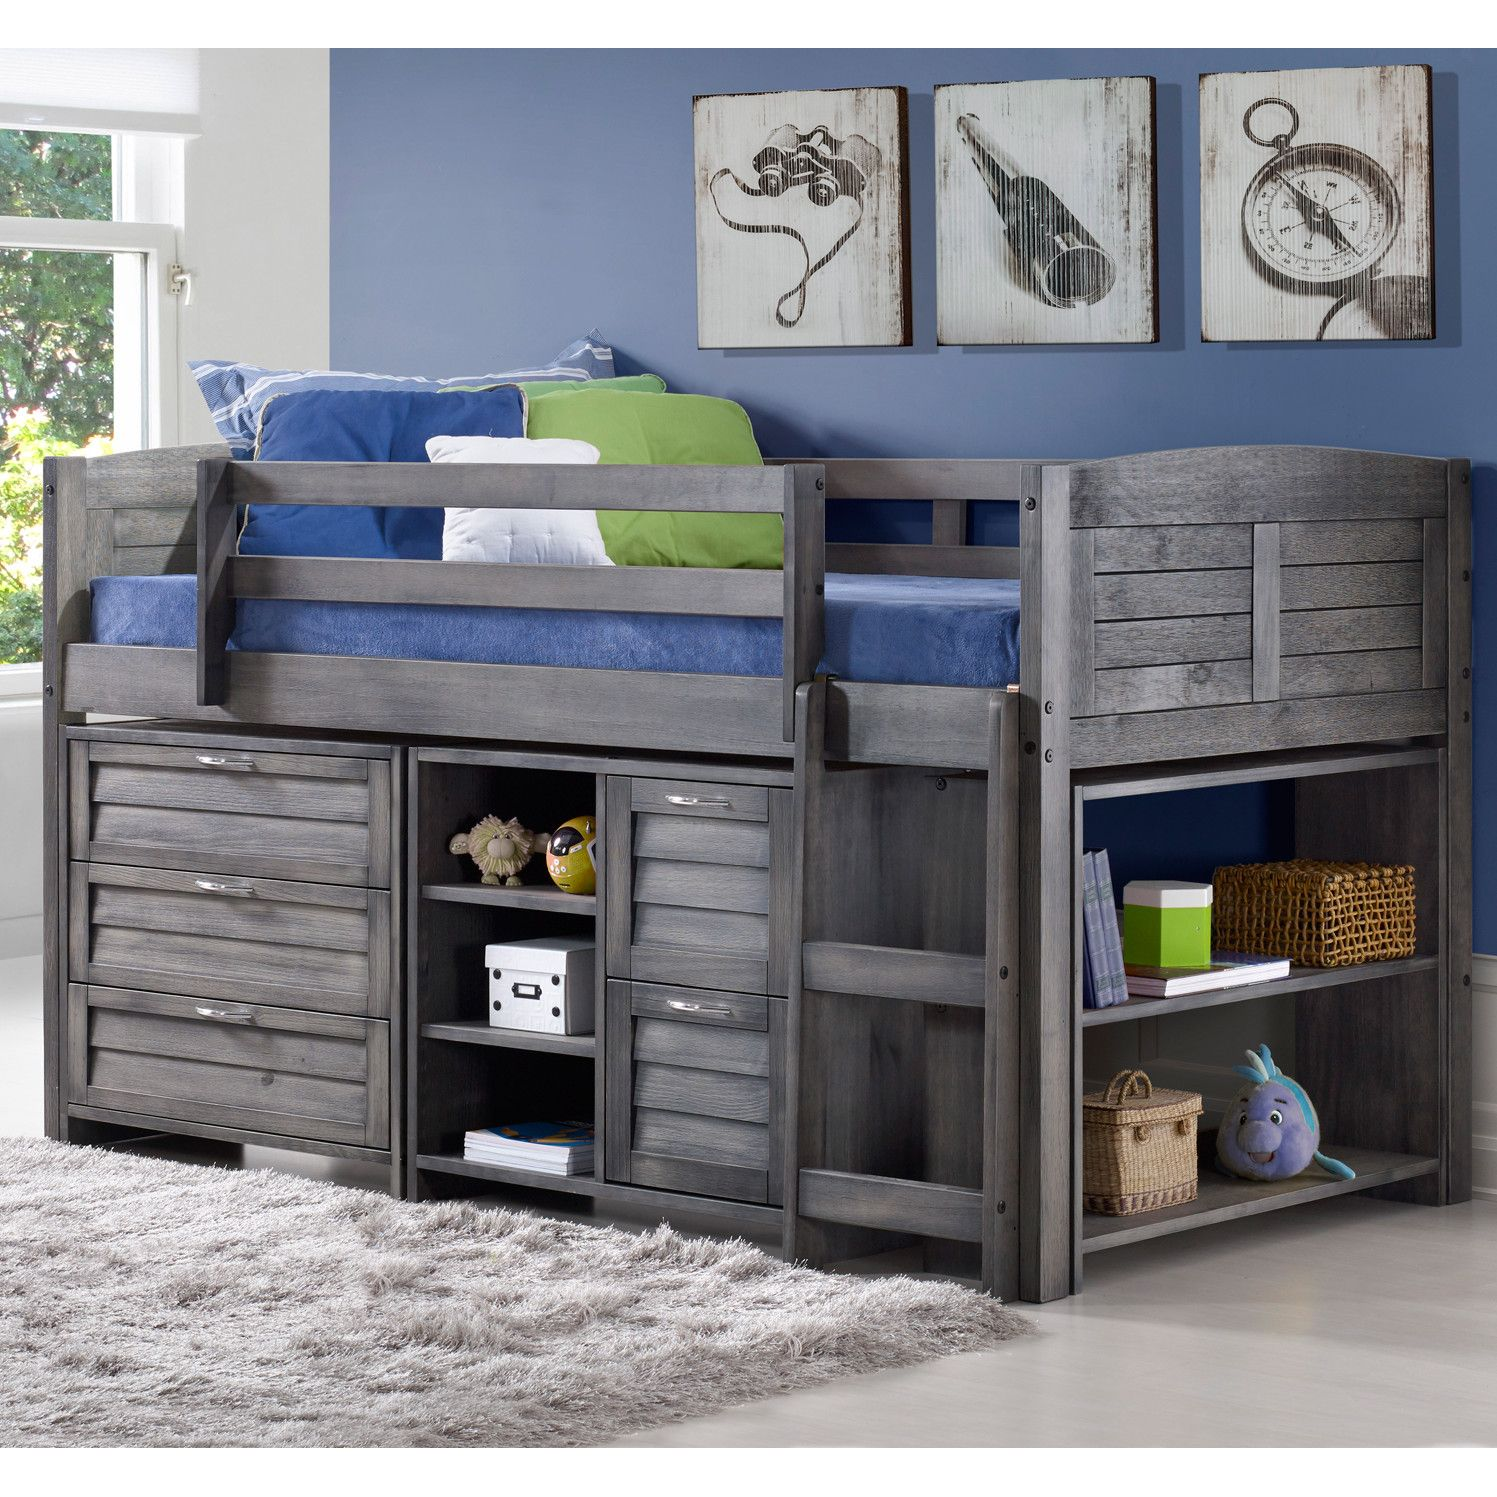 Loft bed ideas  Donco Kids Louver Twin Low Loft Slat Bed with Bookcase and Chest